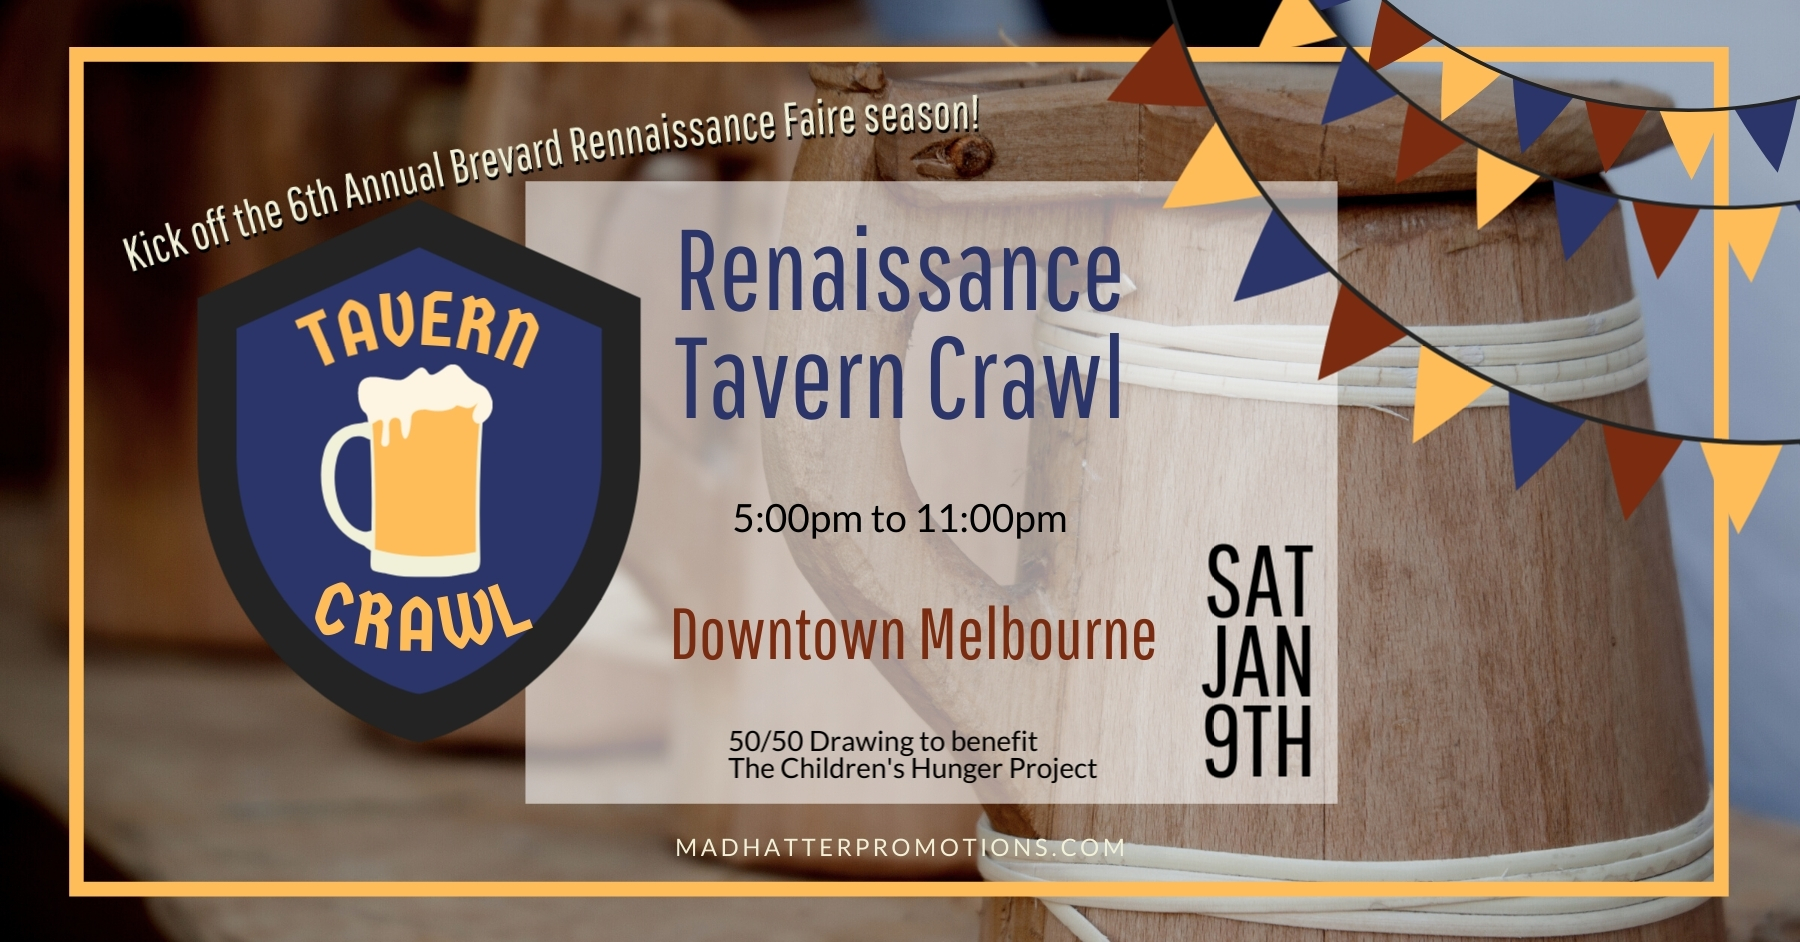 2021 Renaissance Tavern Crawl Downtown Melbourne Saturday January 9th